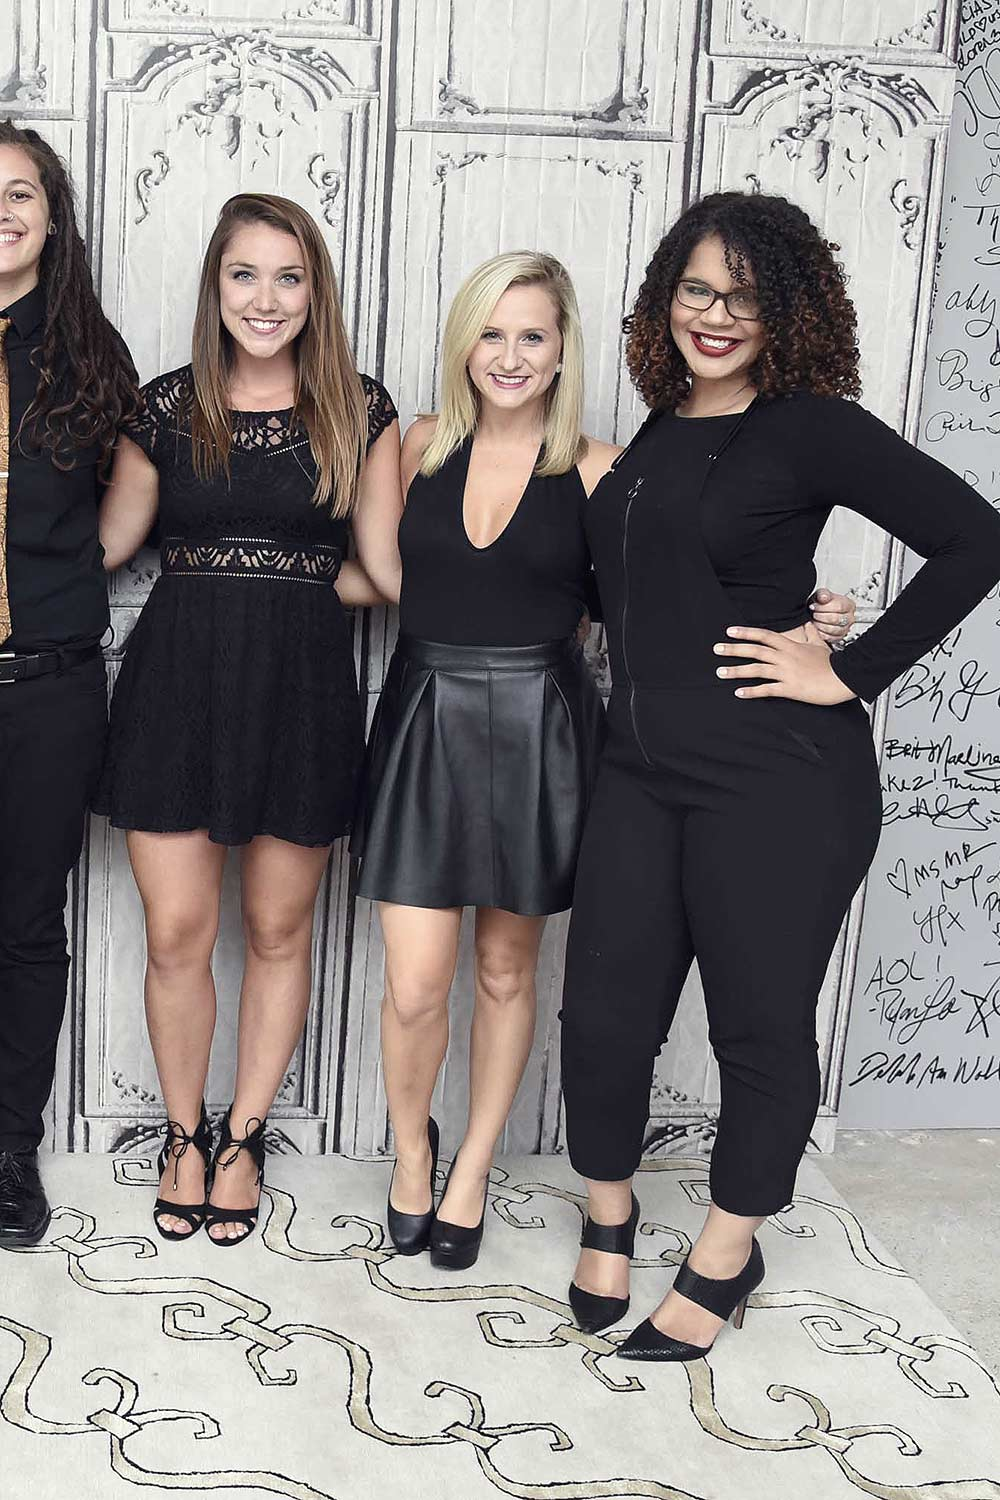 S#arp Attitude attend the AOL Build Speaker Series to discuss Sing It On